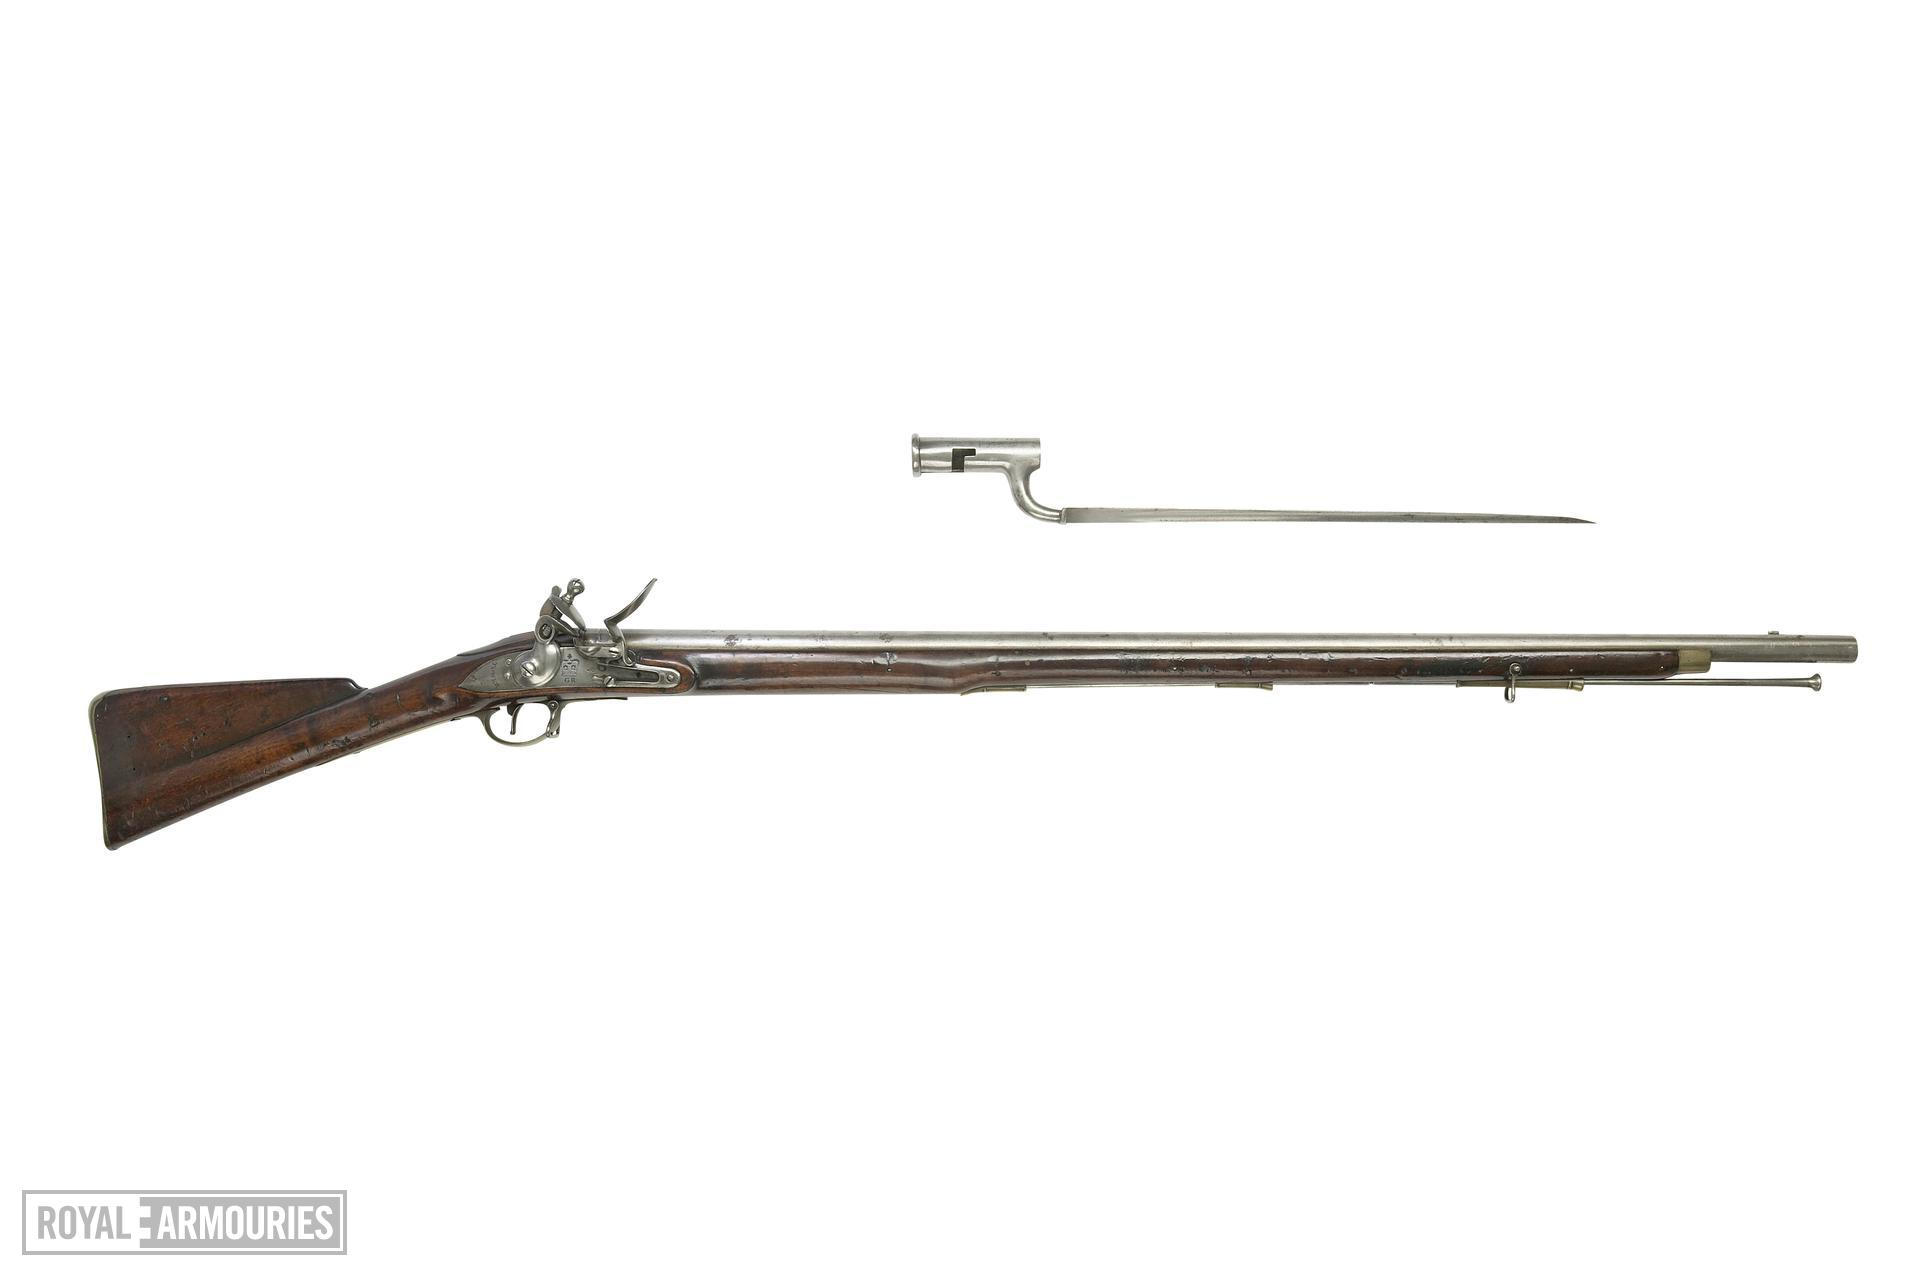 Flintlock muzzle-loading military musket - India Pattern Fitted with bayonet X.1053